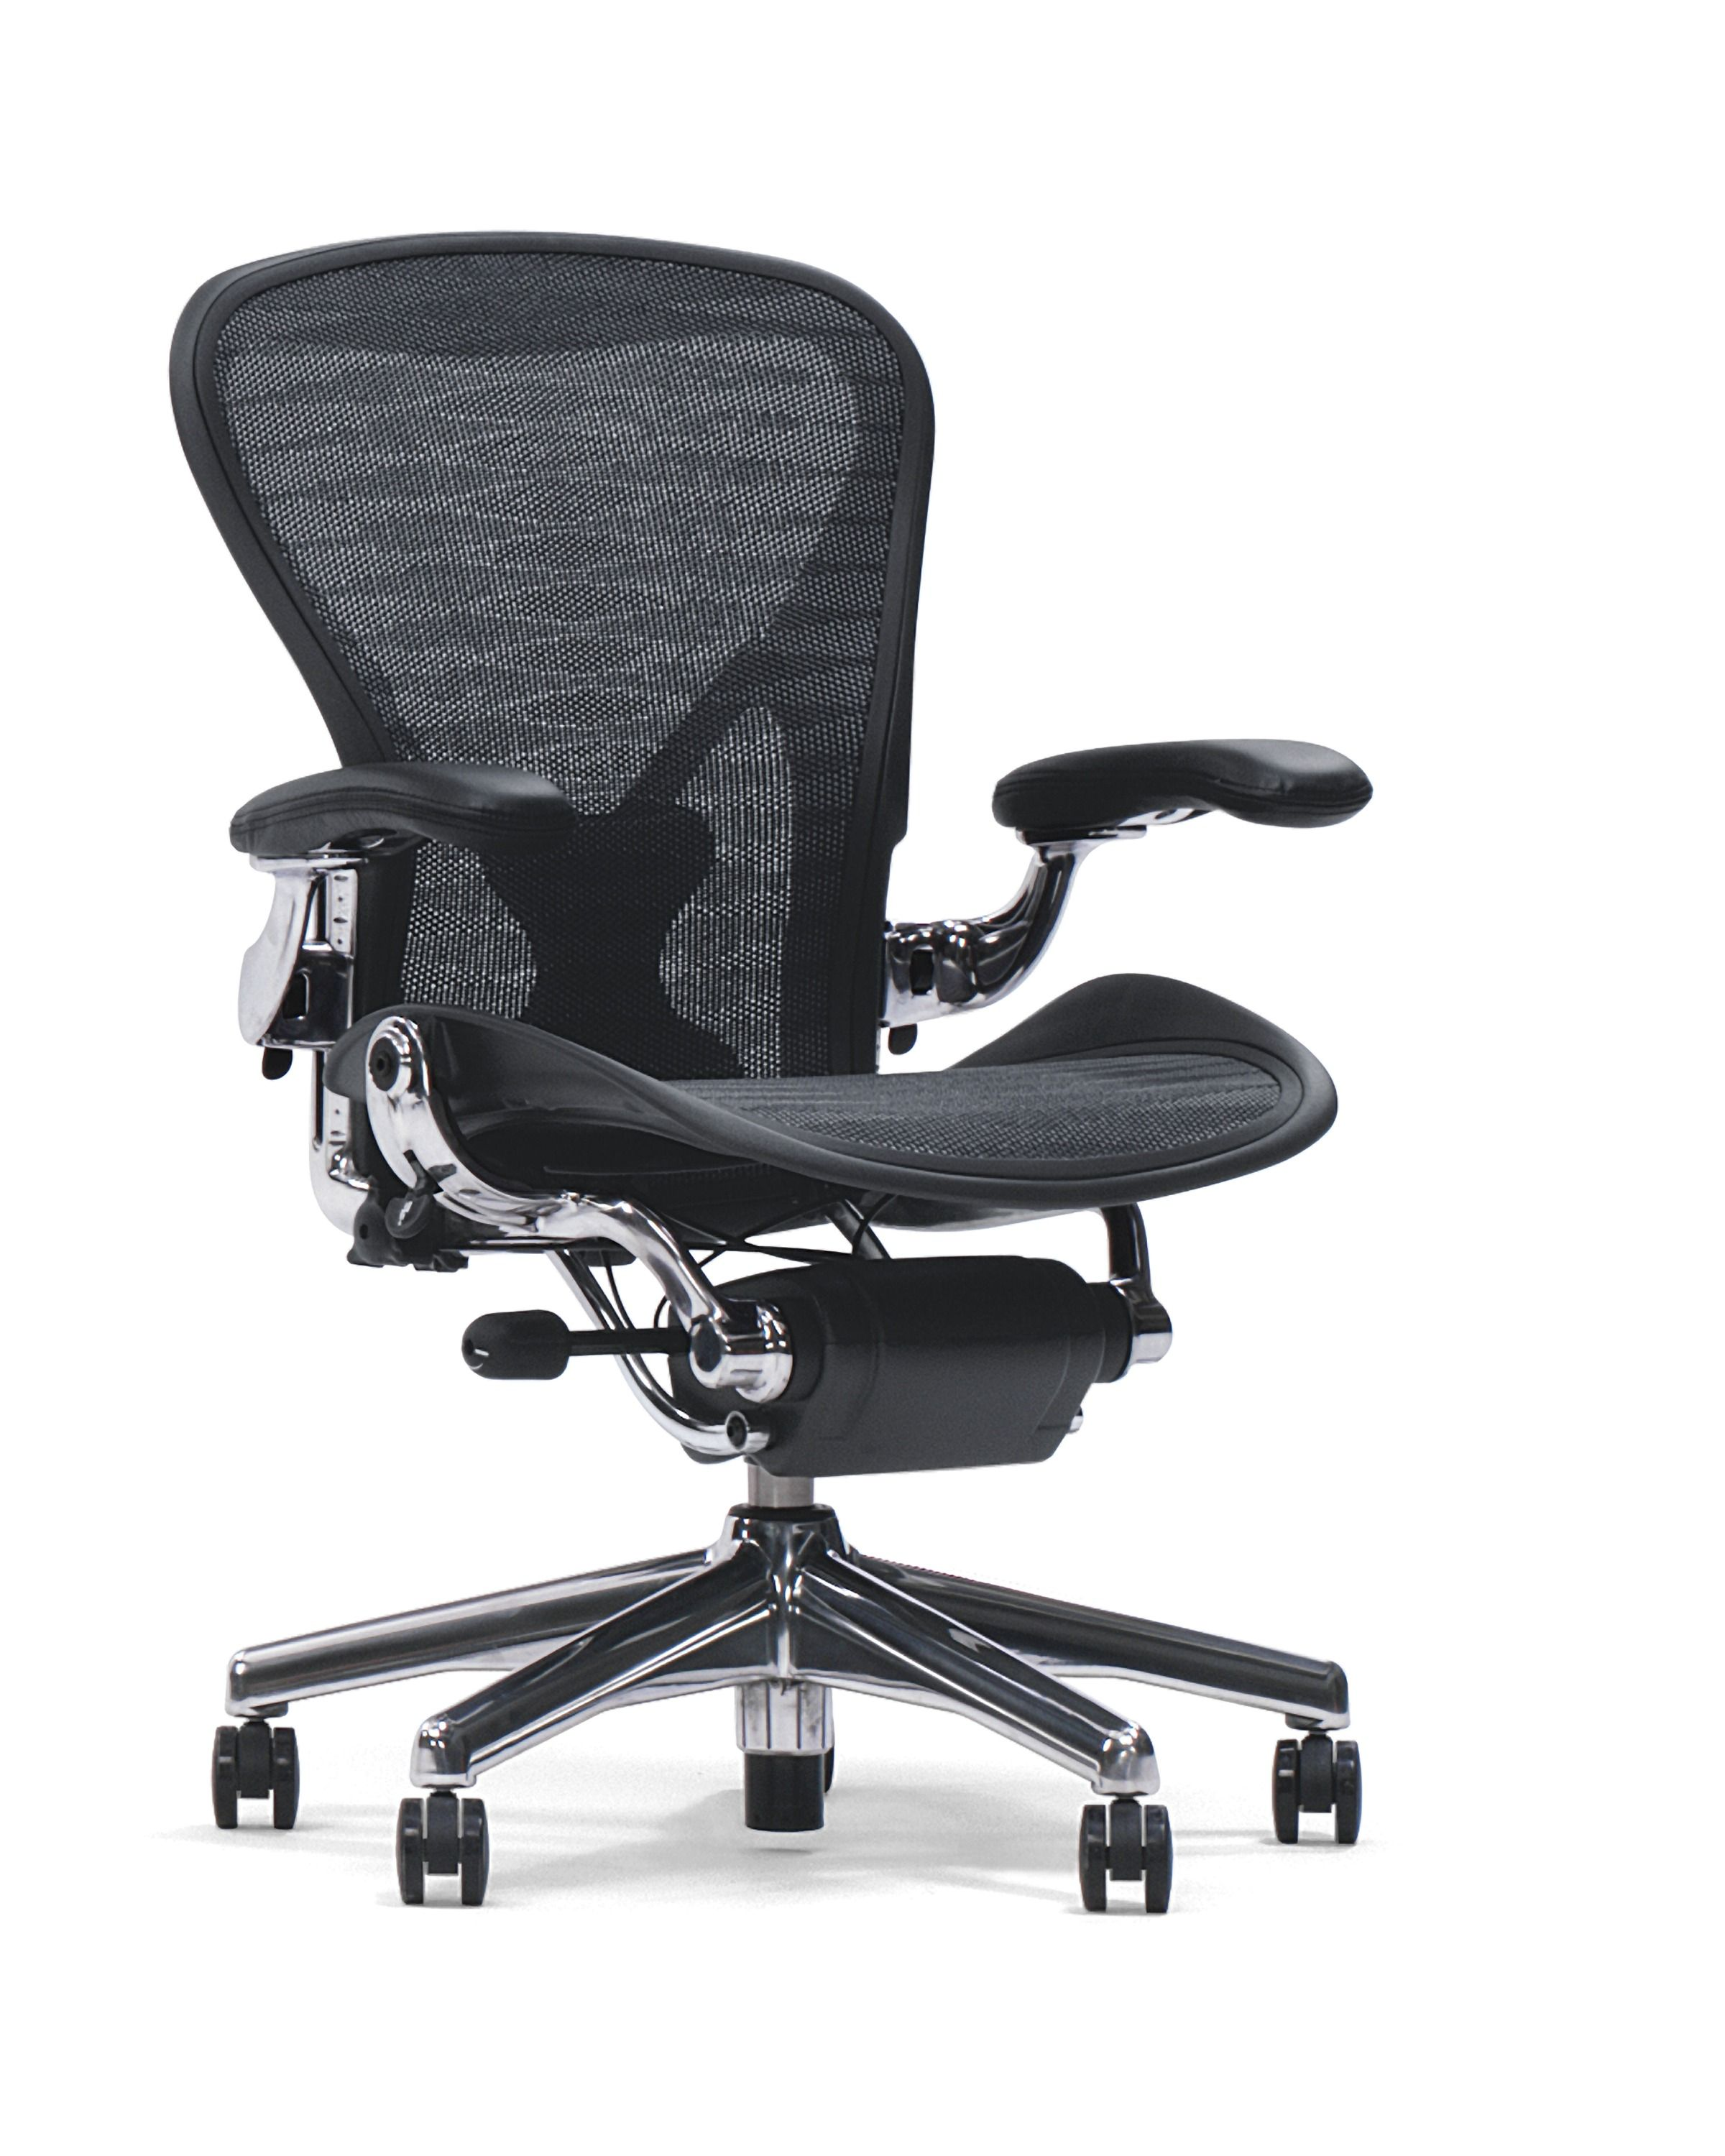 my chair Herman MillerAeron Best office chair, Office